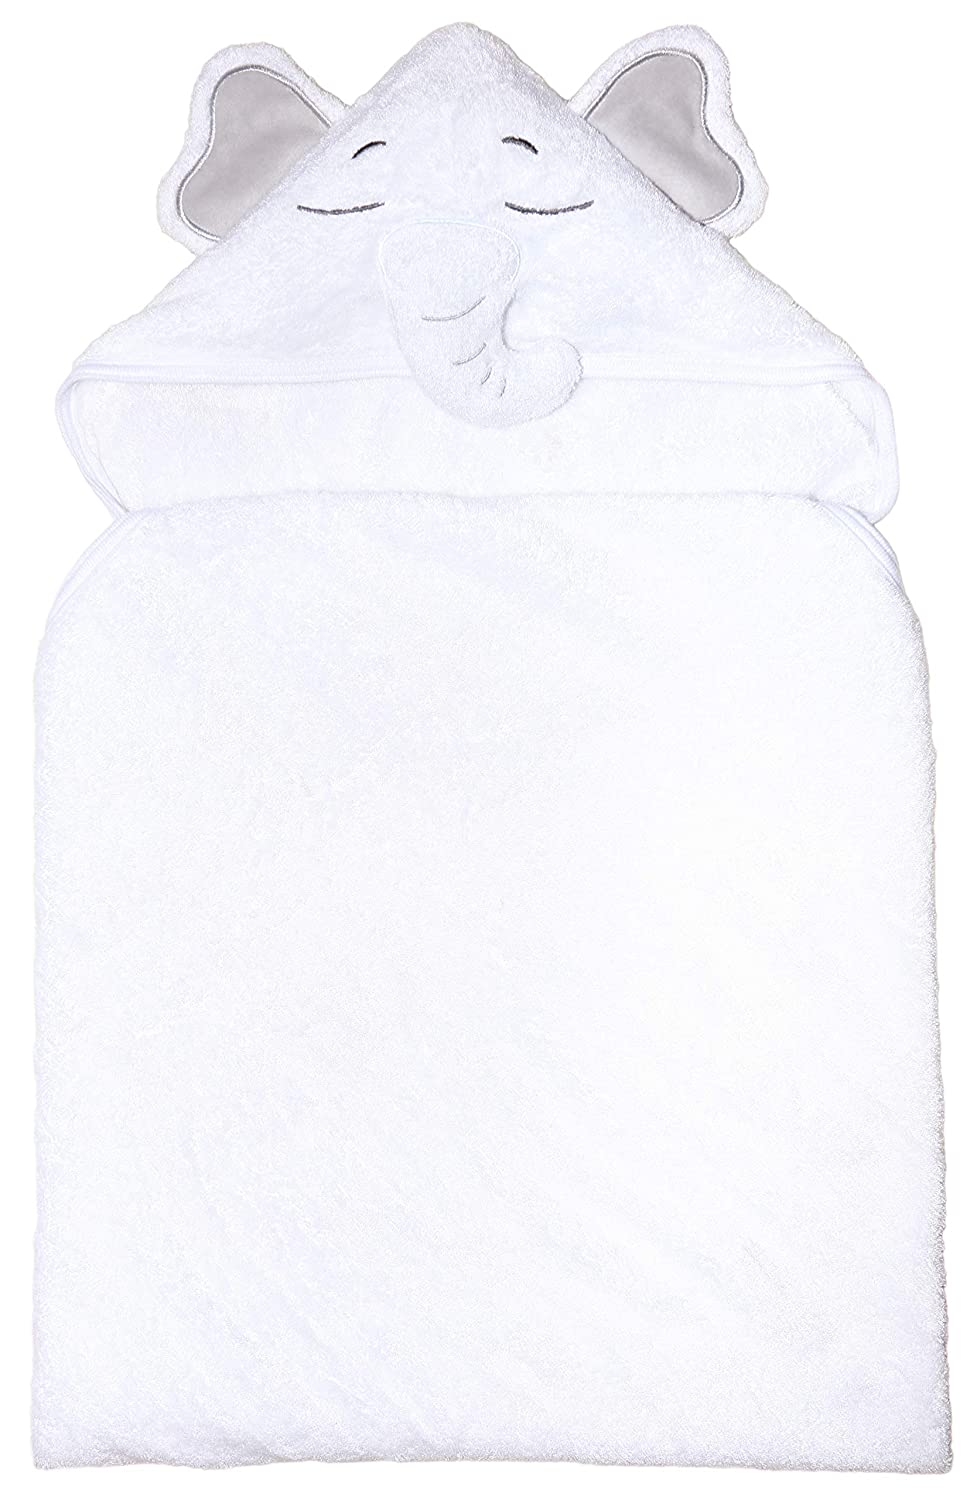 Fast Dry Premium Hypoallergenic Ultra Thick /& Soft with Animal Ears Lasts Through Washes Baby Hooded Towel Extra Absorbent Toddler Infant Baby Bath Towels with Hood Boys Girls Bamboo Elephant